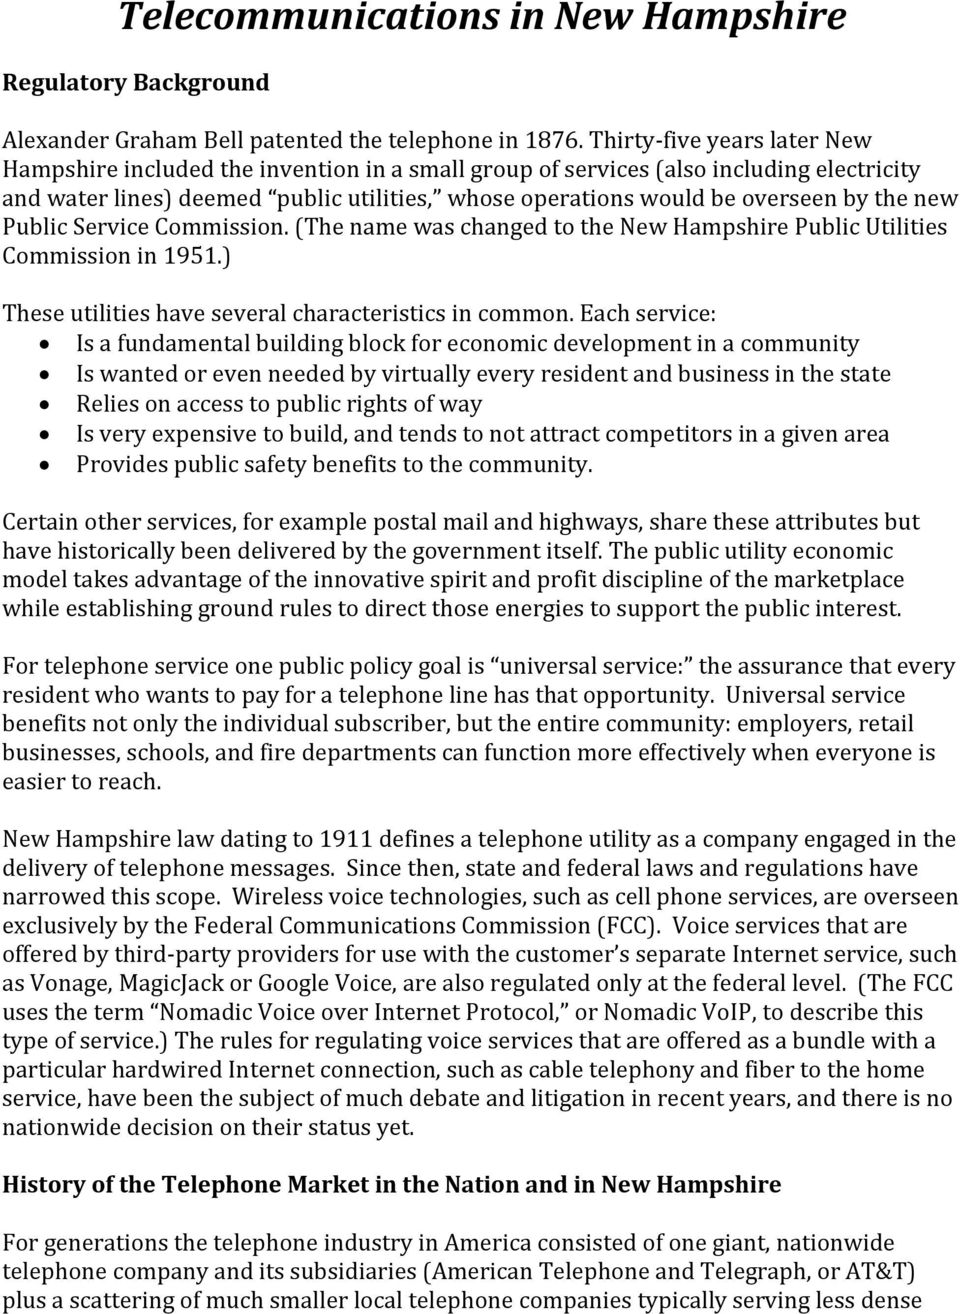 the new Public Service Commission. (The name was changed to the New Hampshire Public Utilities Commission in 1951.) These utilities have several characteristics in common.